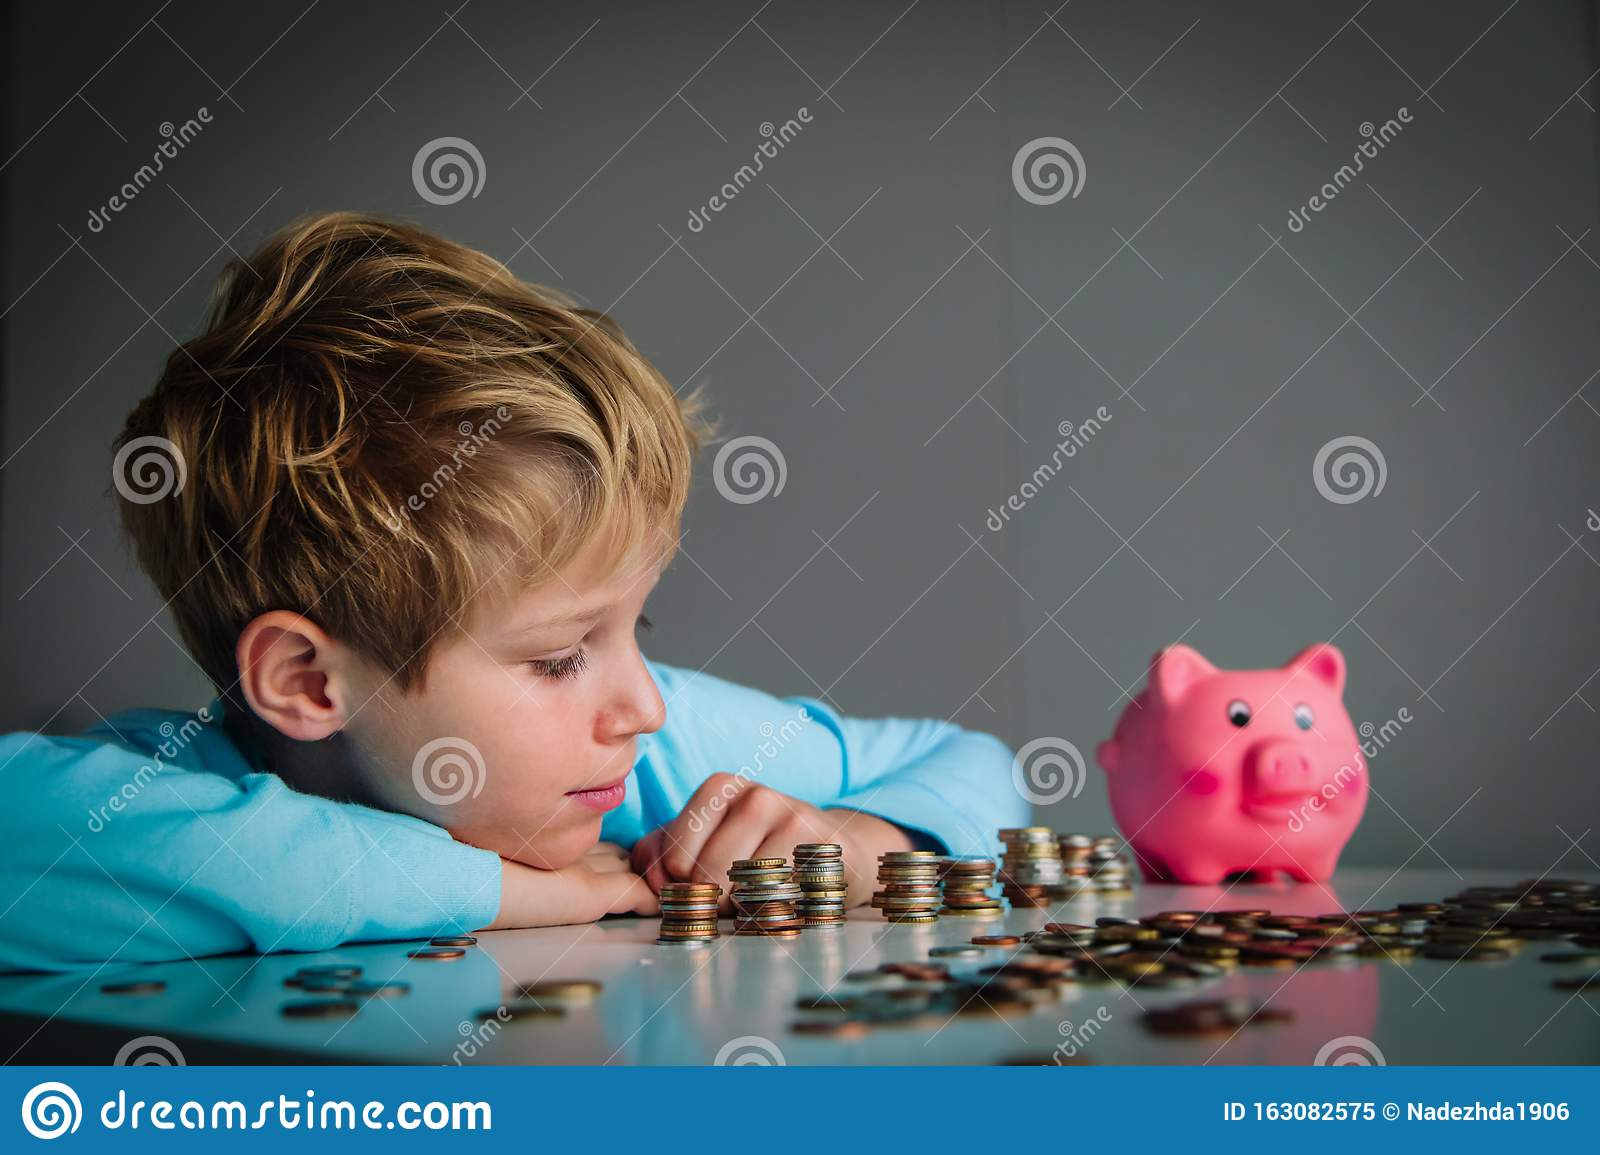 Child Counting Money Boy Put Coins Into Piggy Bank Stock